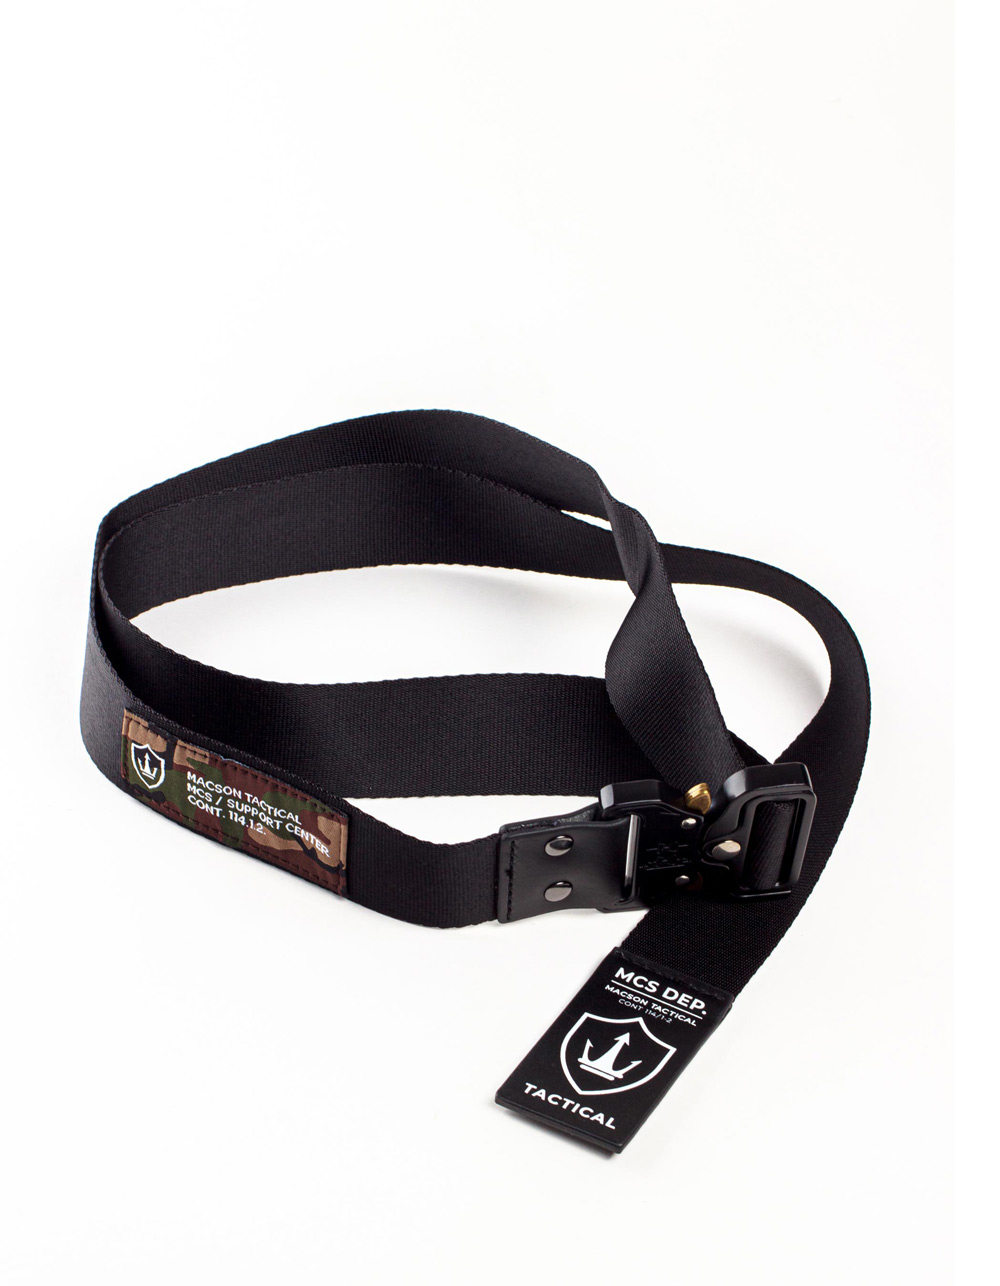 Black tactical carabiner belt.